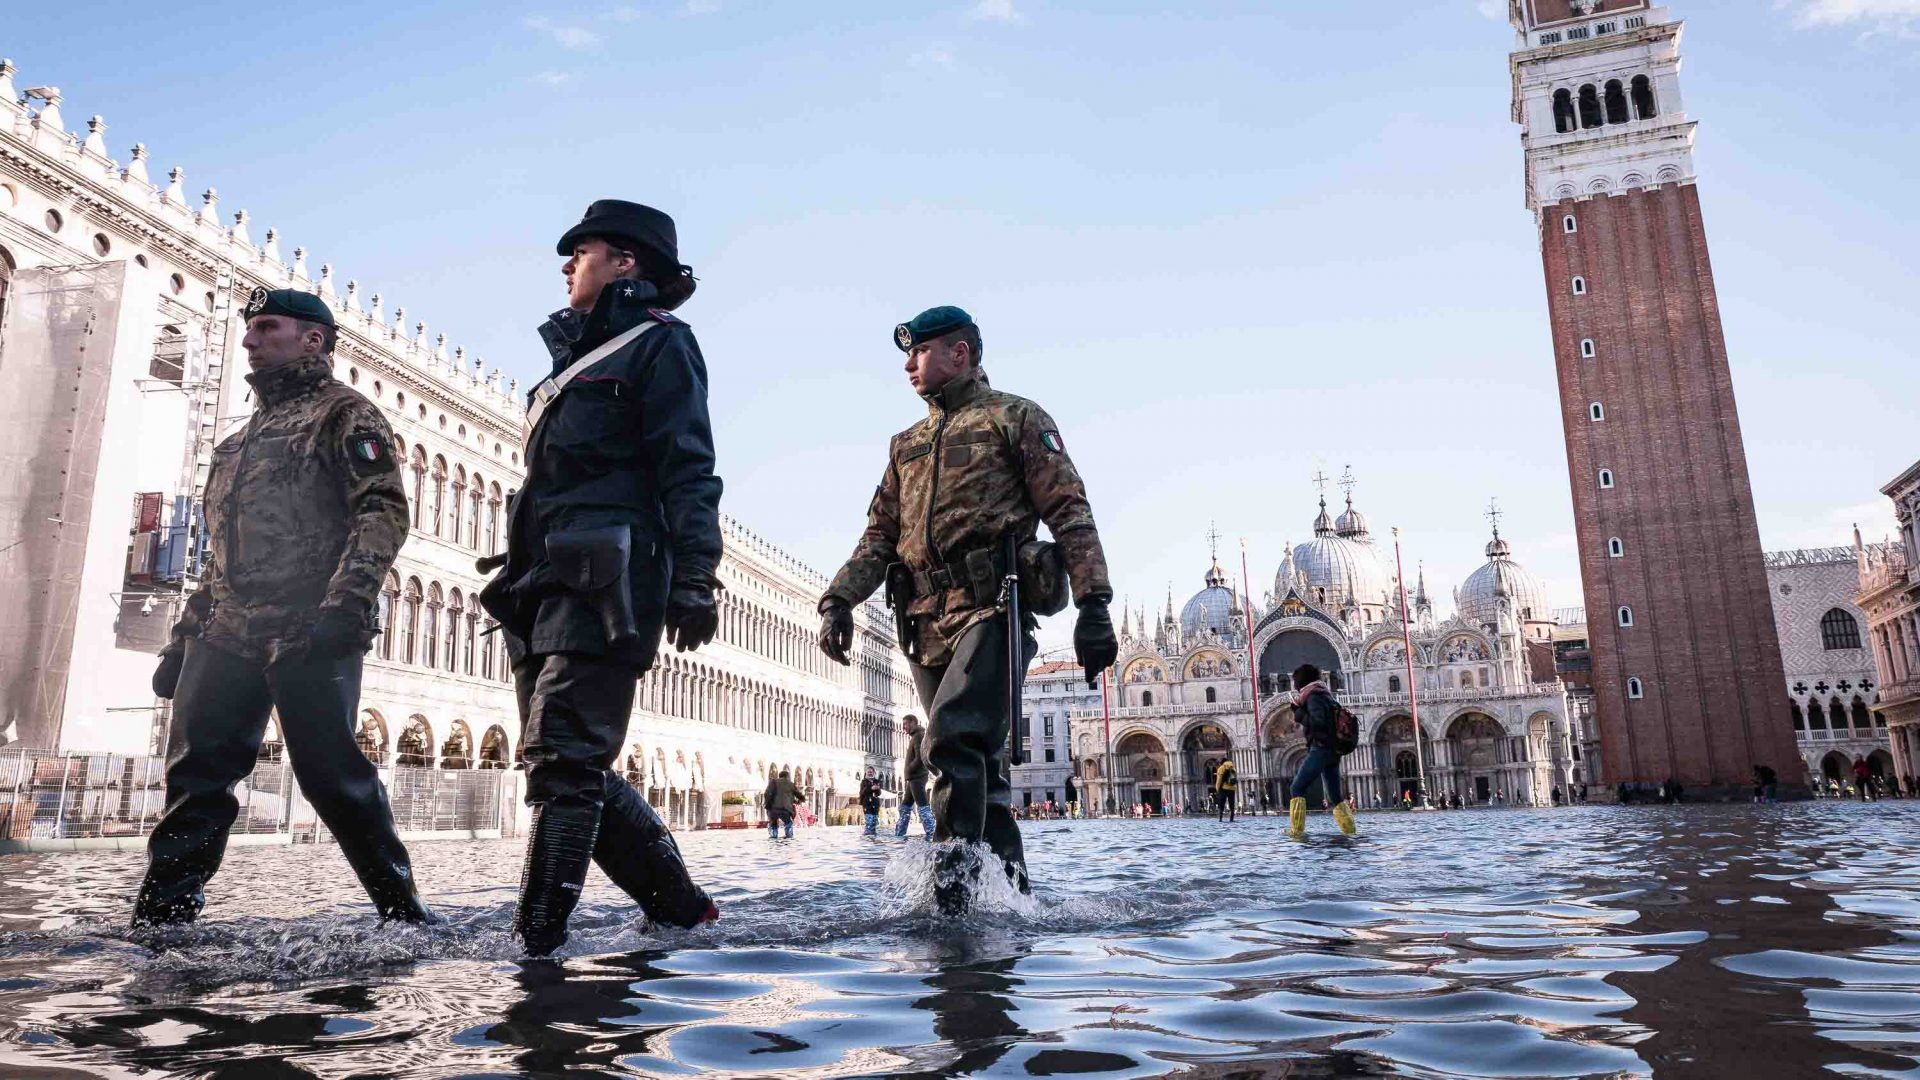 Flooded by the sea, tourists, and inflation: What does the future hold for Venice?